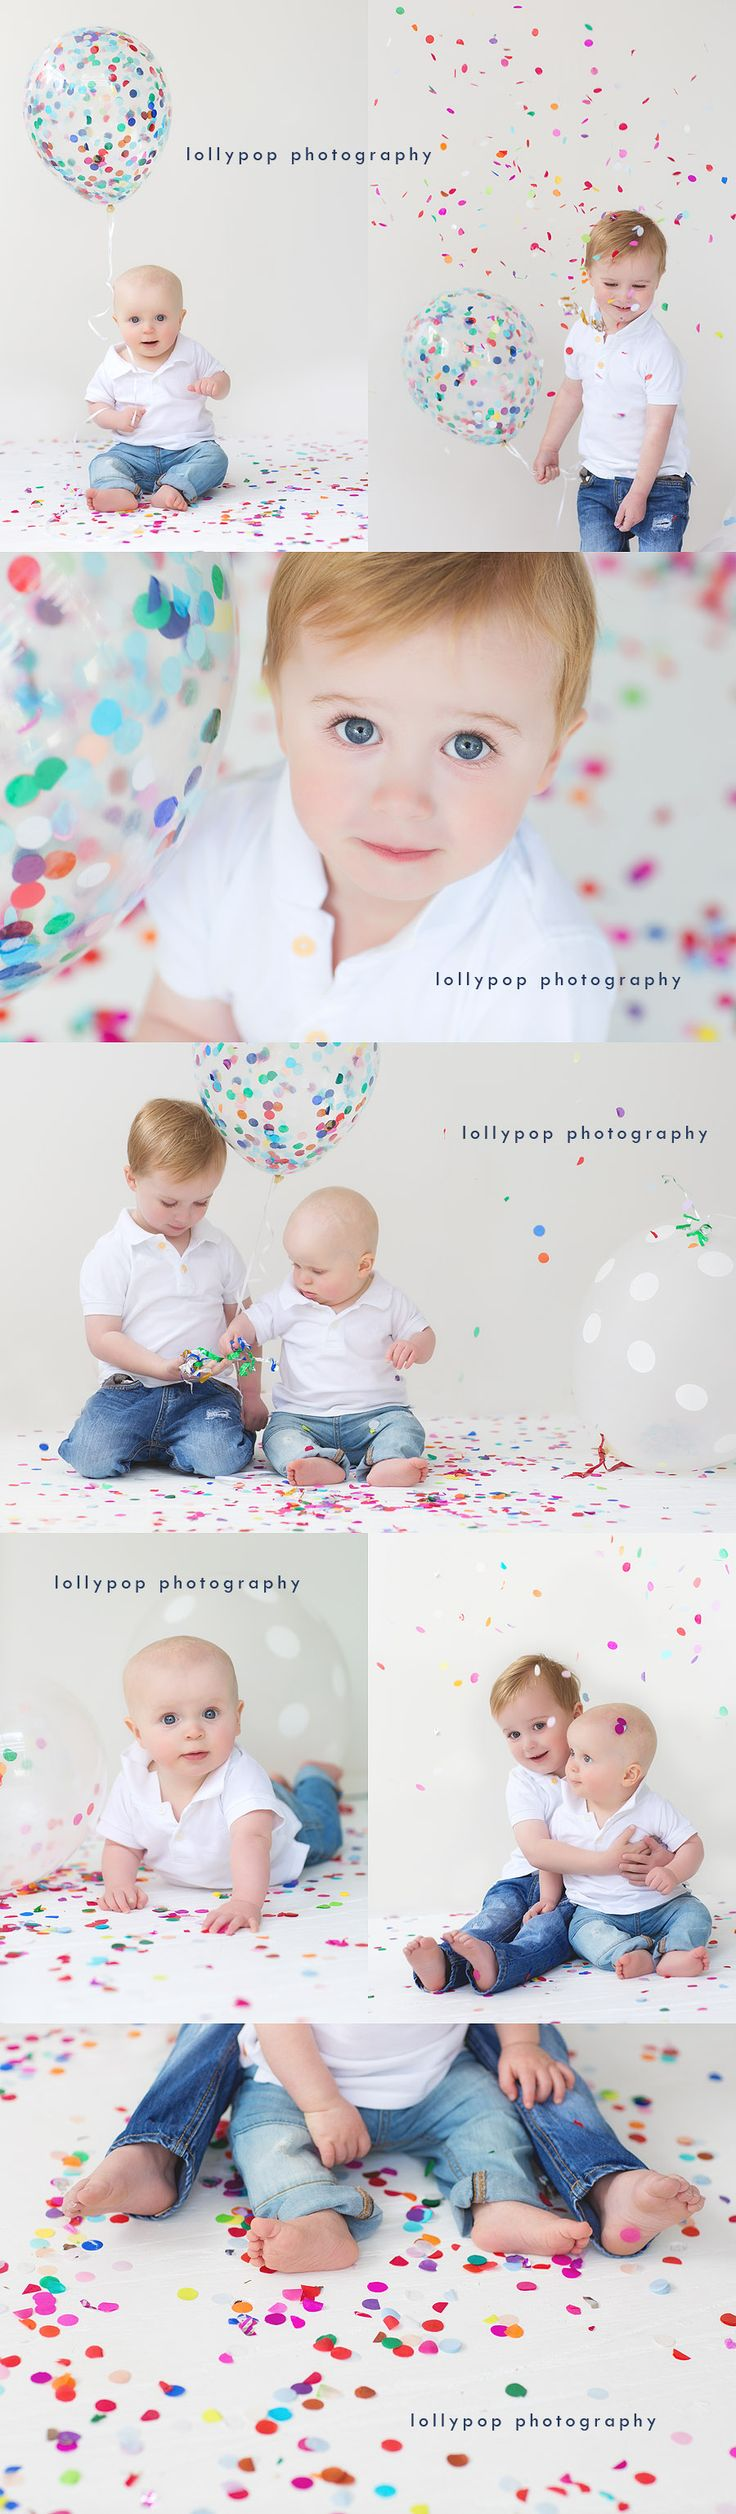 confetti mini sessions - Google Search                                                                                                                                                                                 More